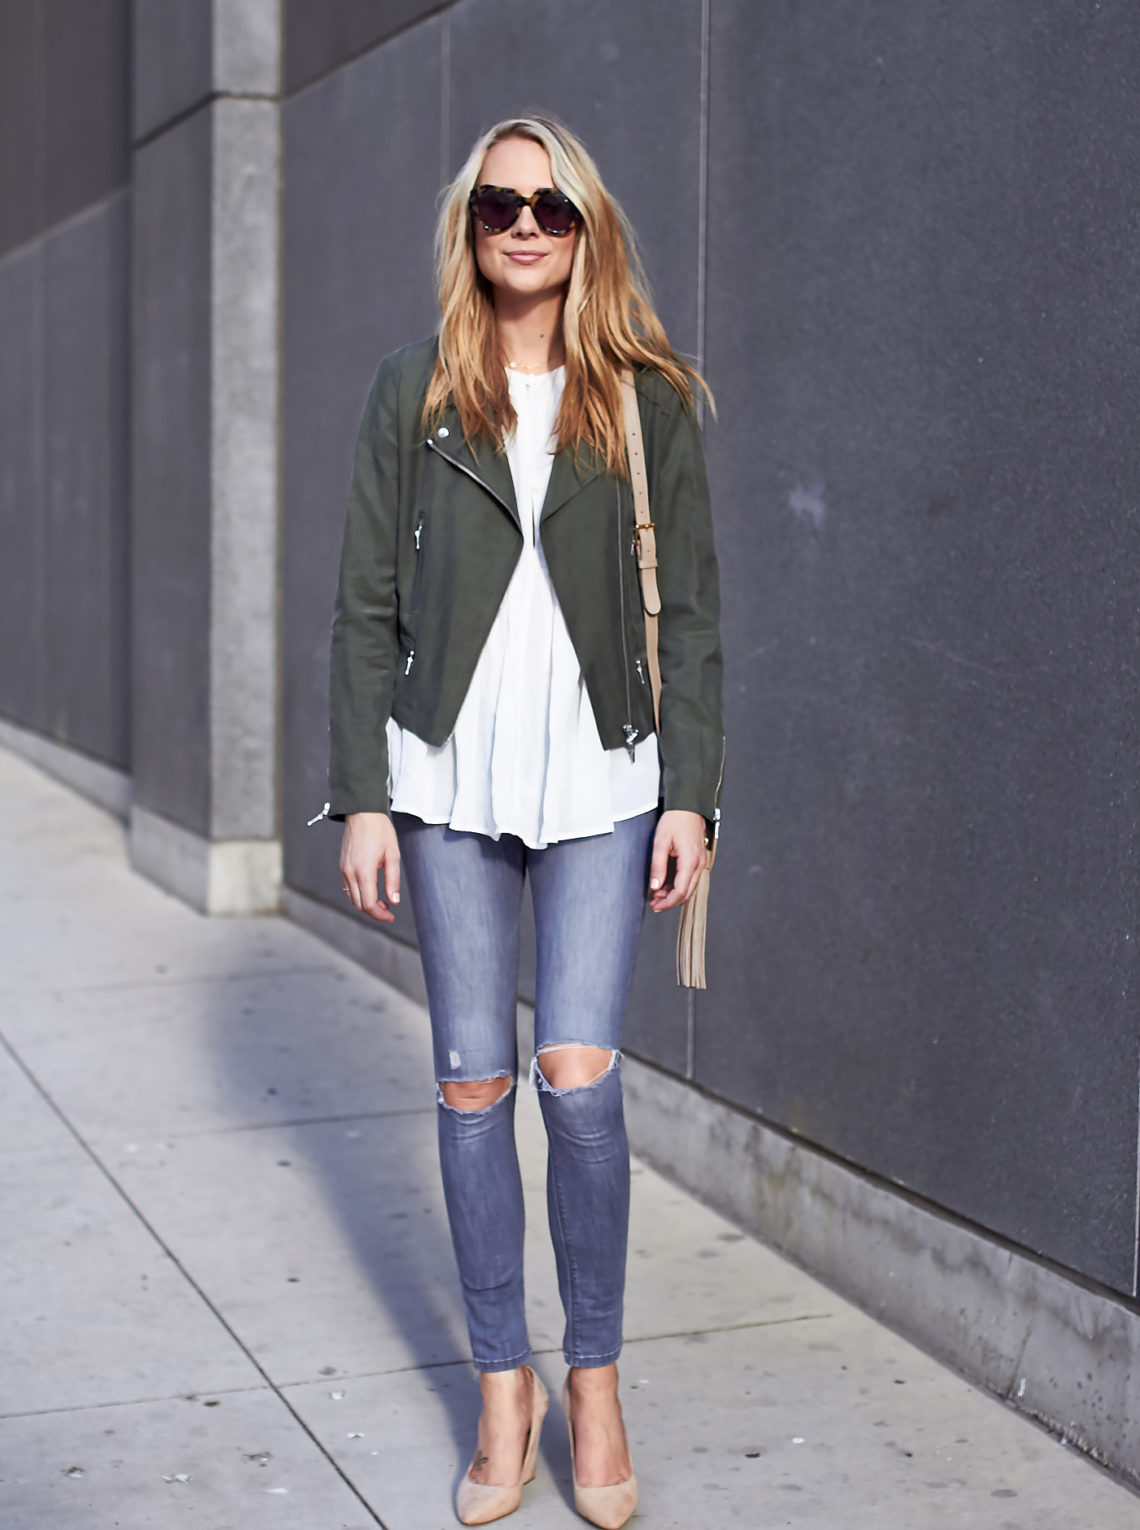 fashion-jackson-club-monaco-kapri-moto-jacket-ripped-denim-skinny-jeans